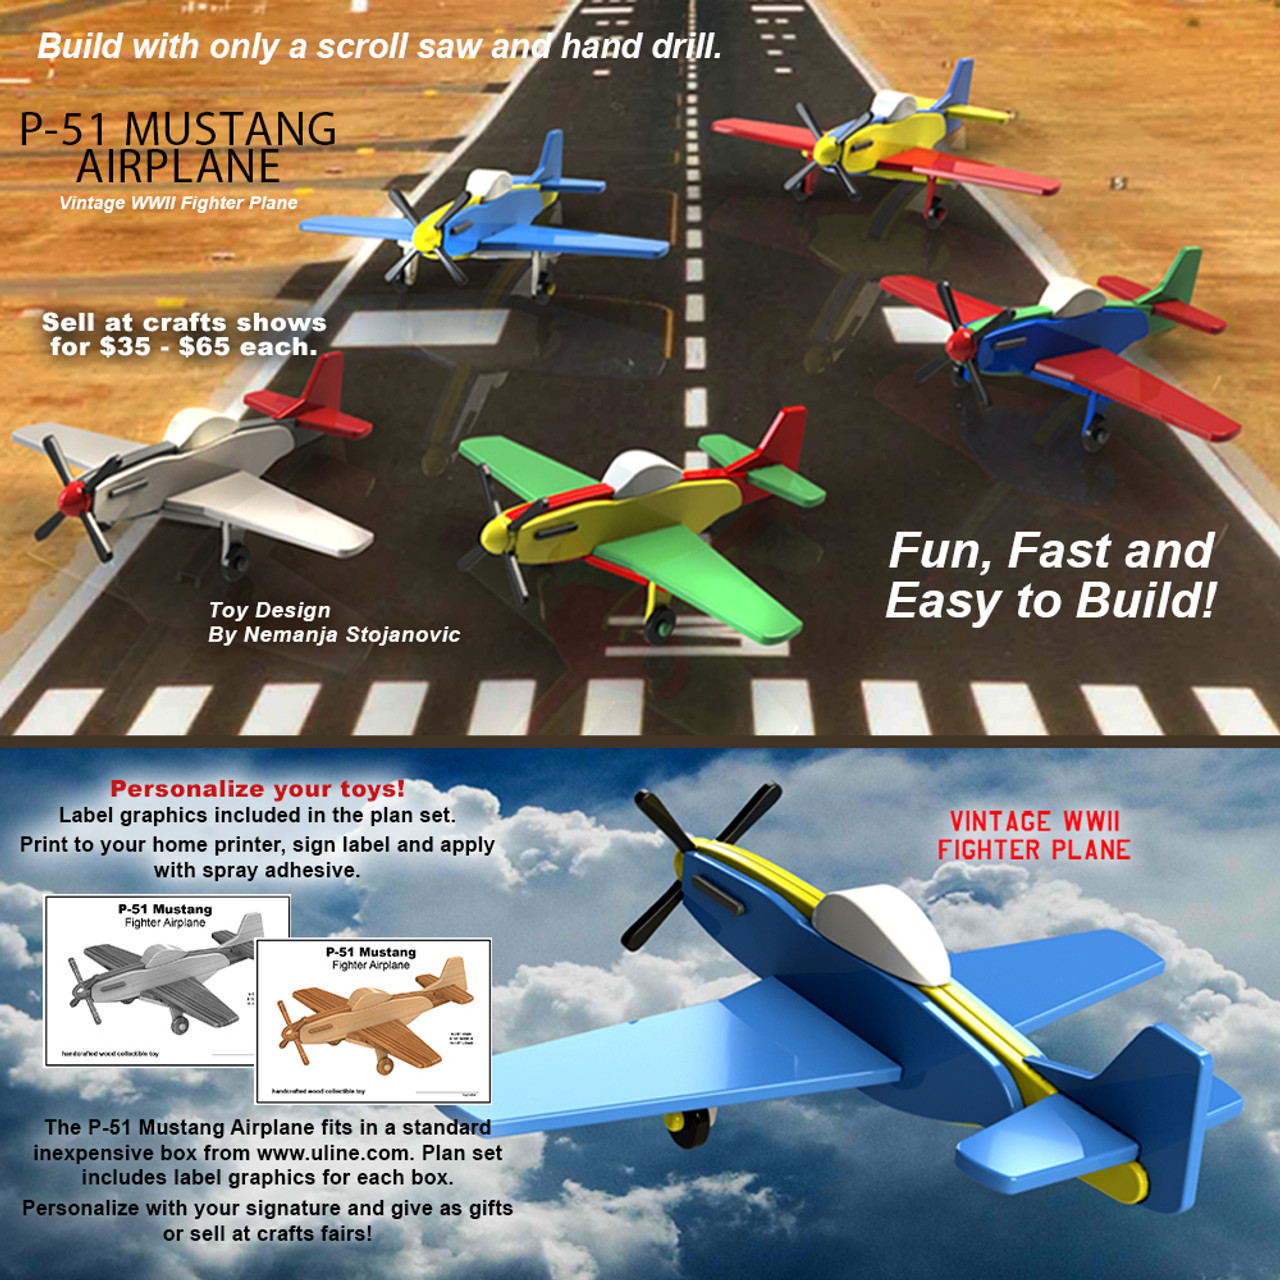 scroll saw magic p-51 mustang airplane wood toy plans (pdf download)